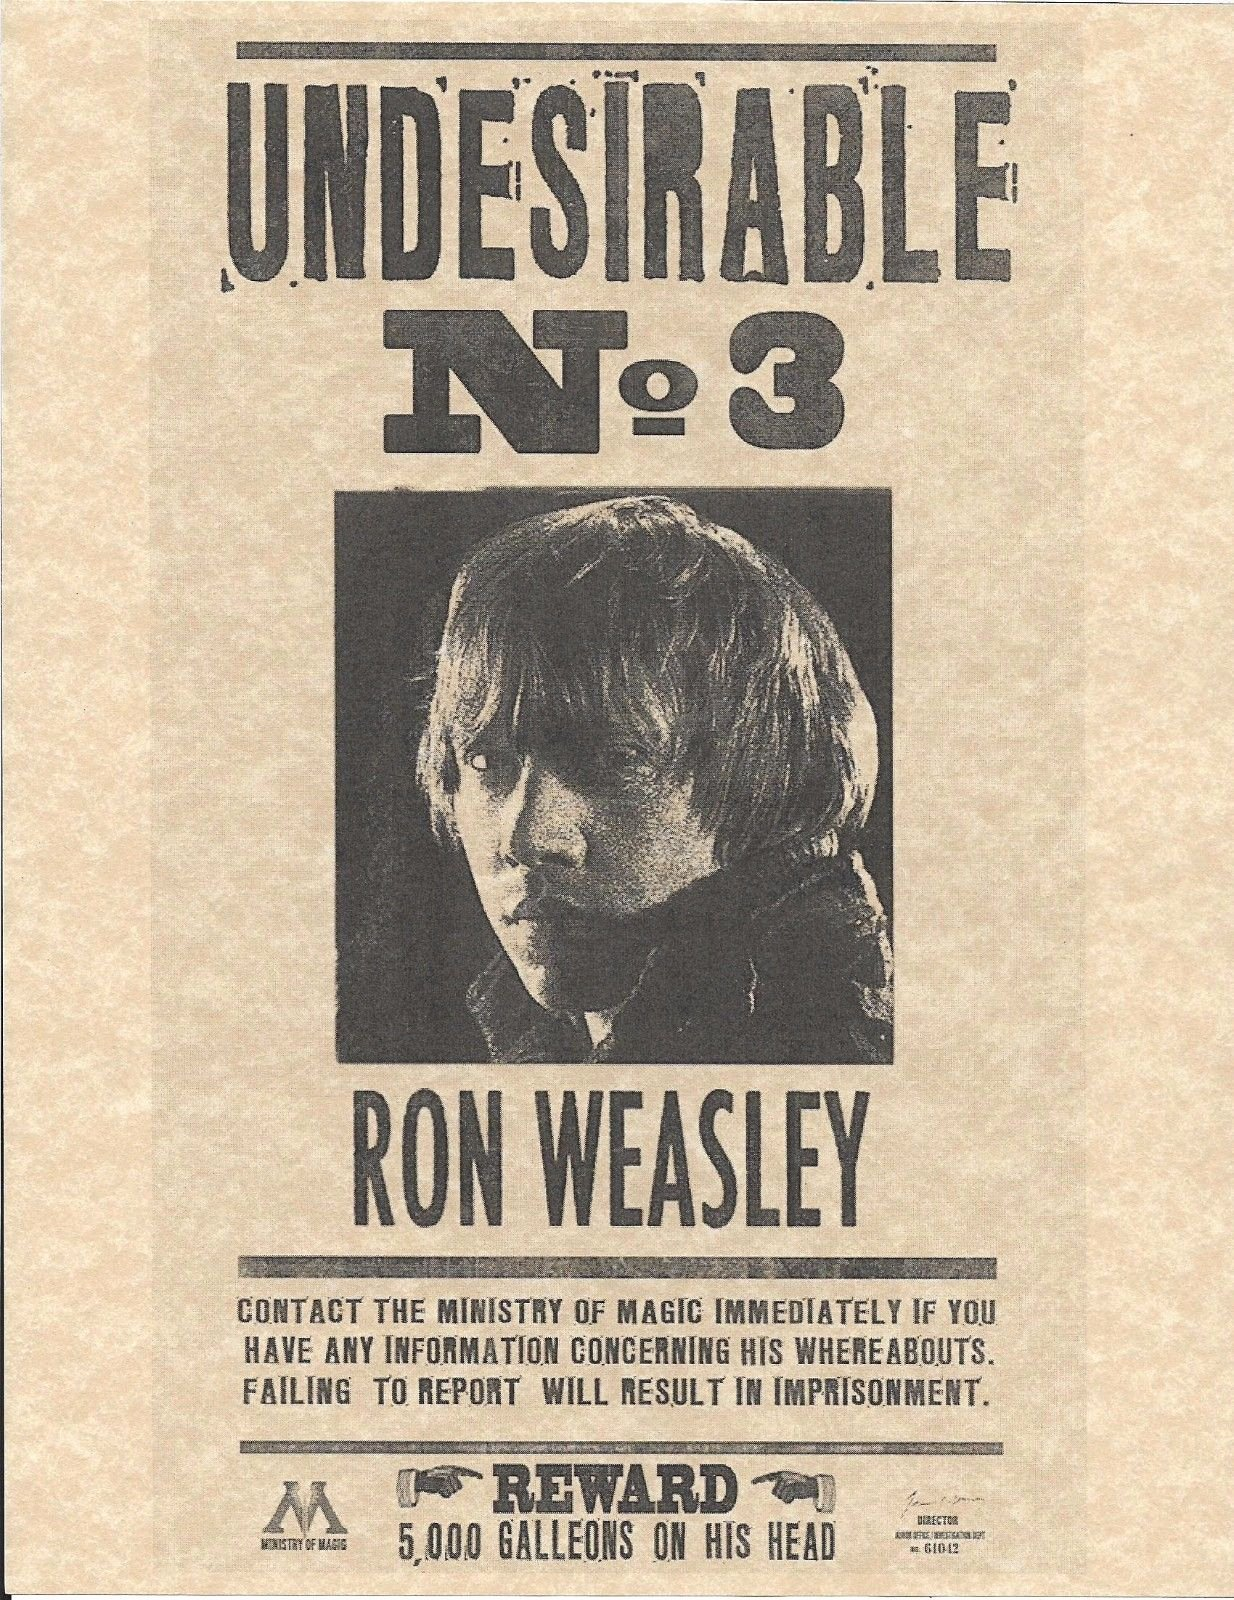 Harry Potter Wanted Poster New Harry Potter Undesirable Number 3 Ron Weasley Wanted Flyer